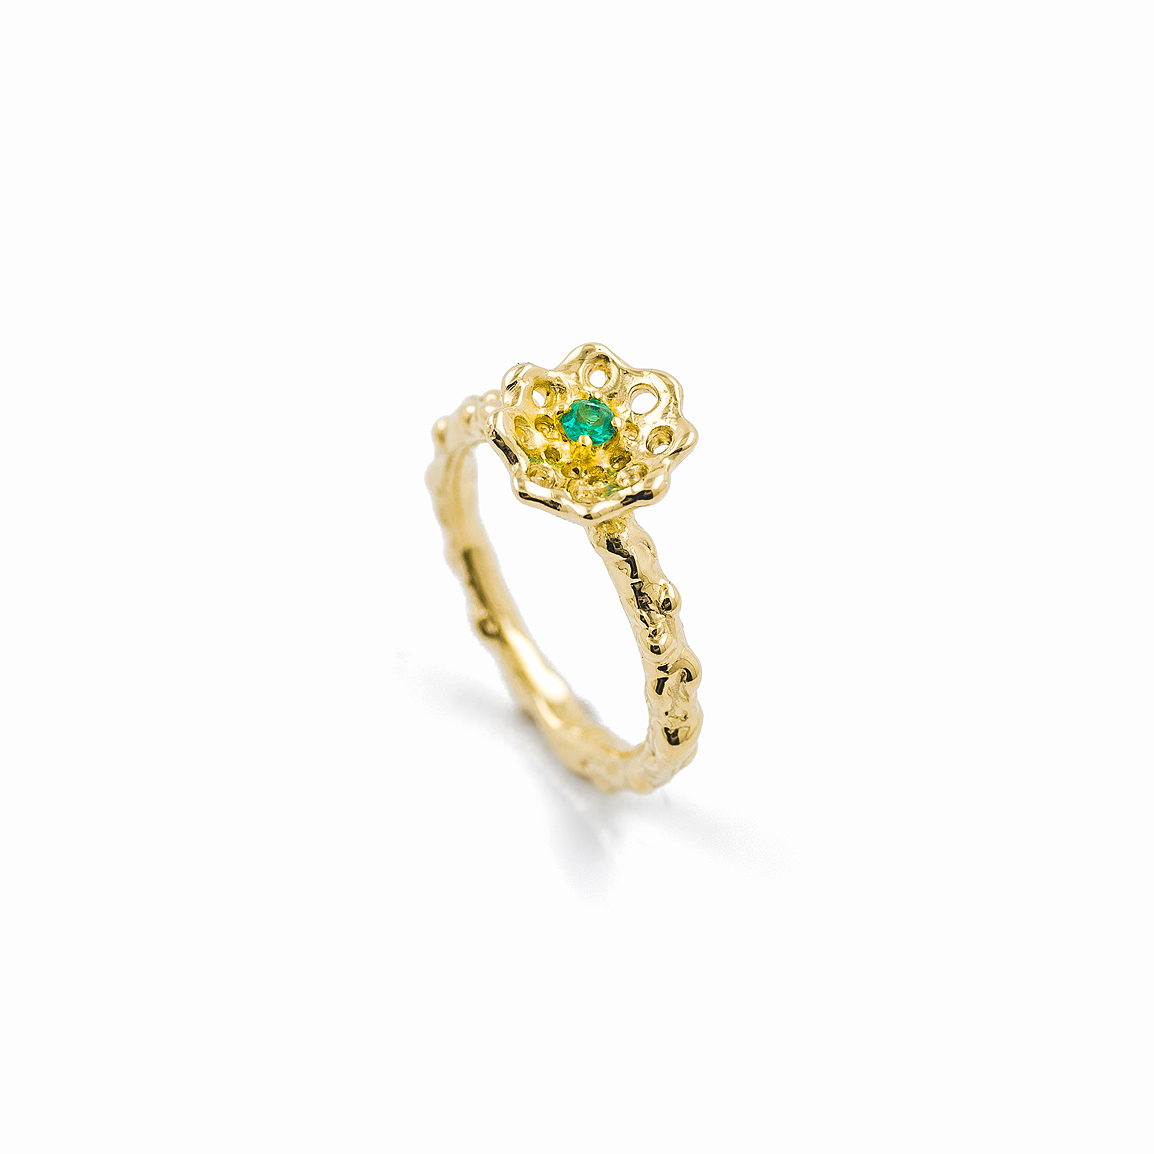 18ct yellow gold, emerald.